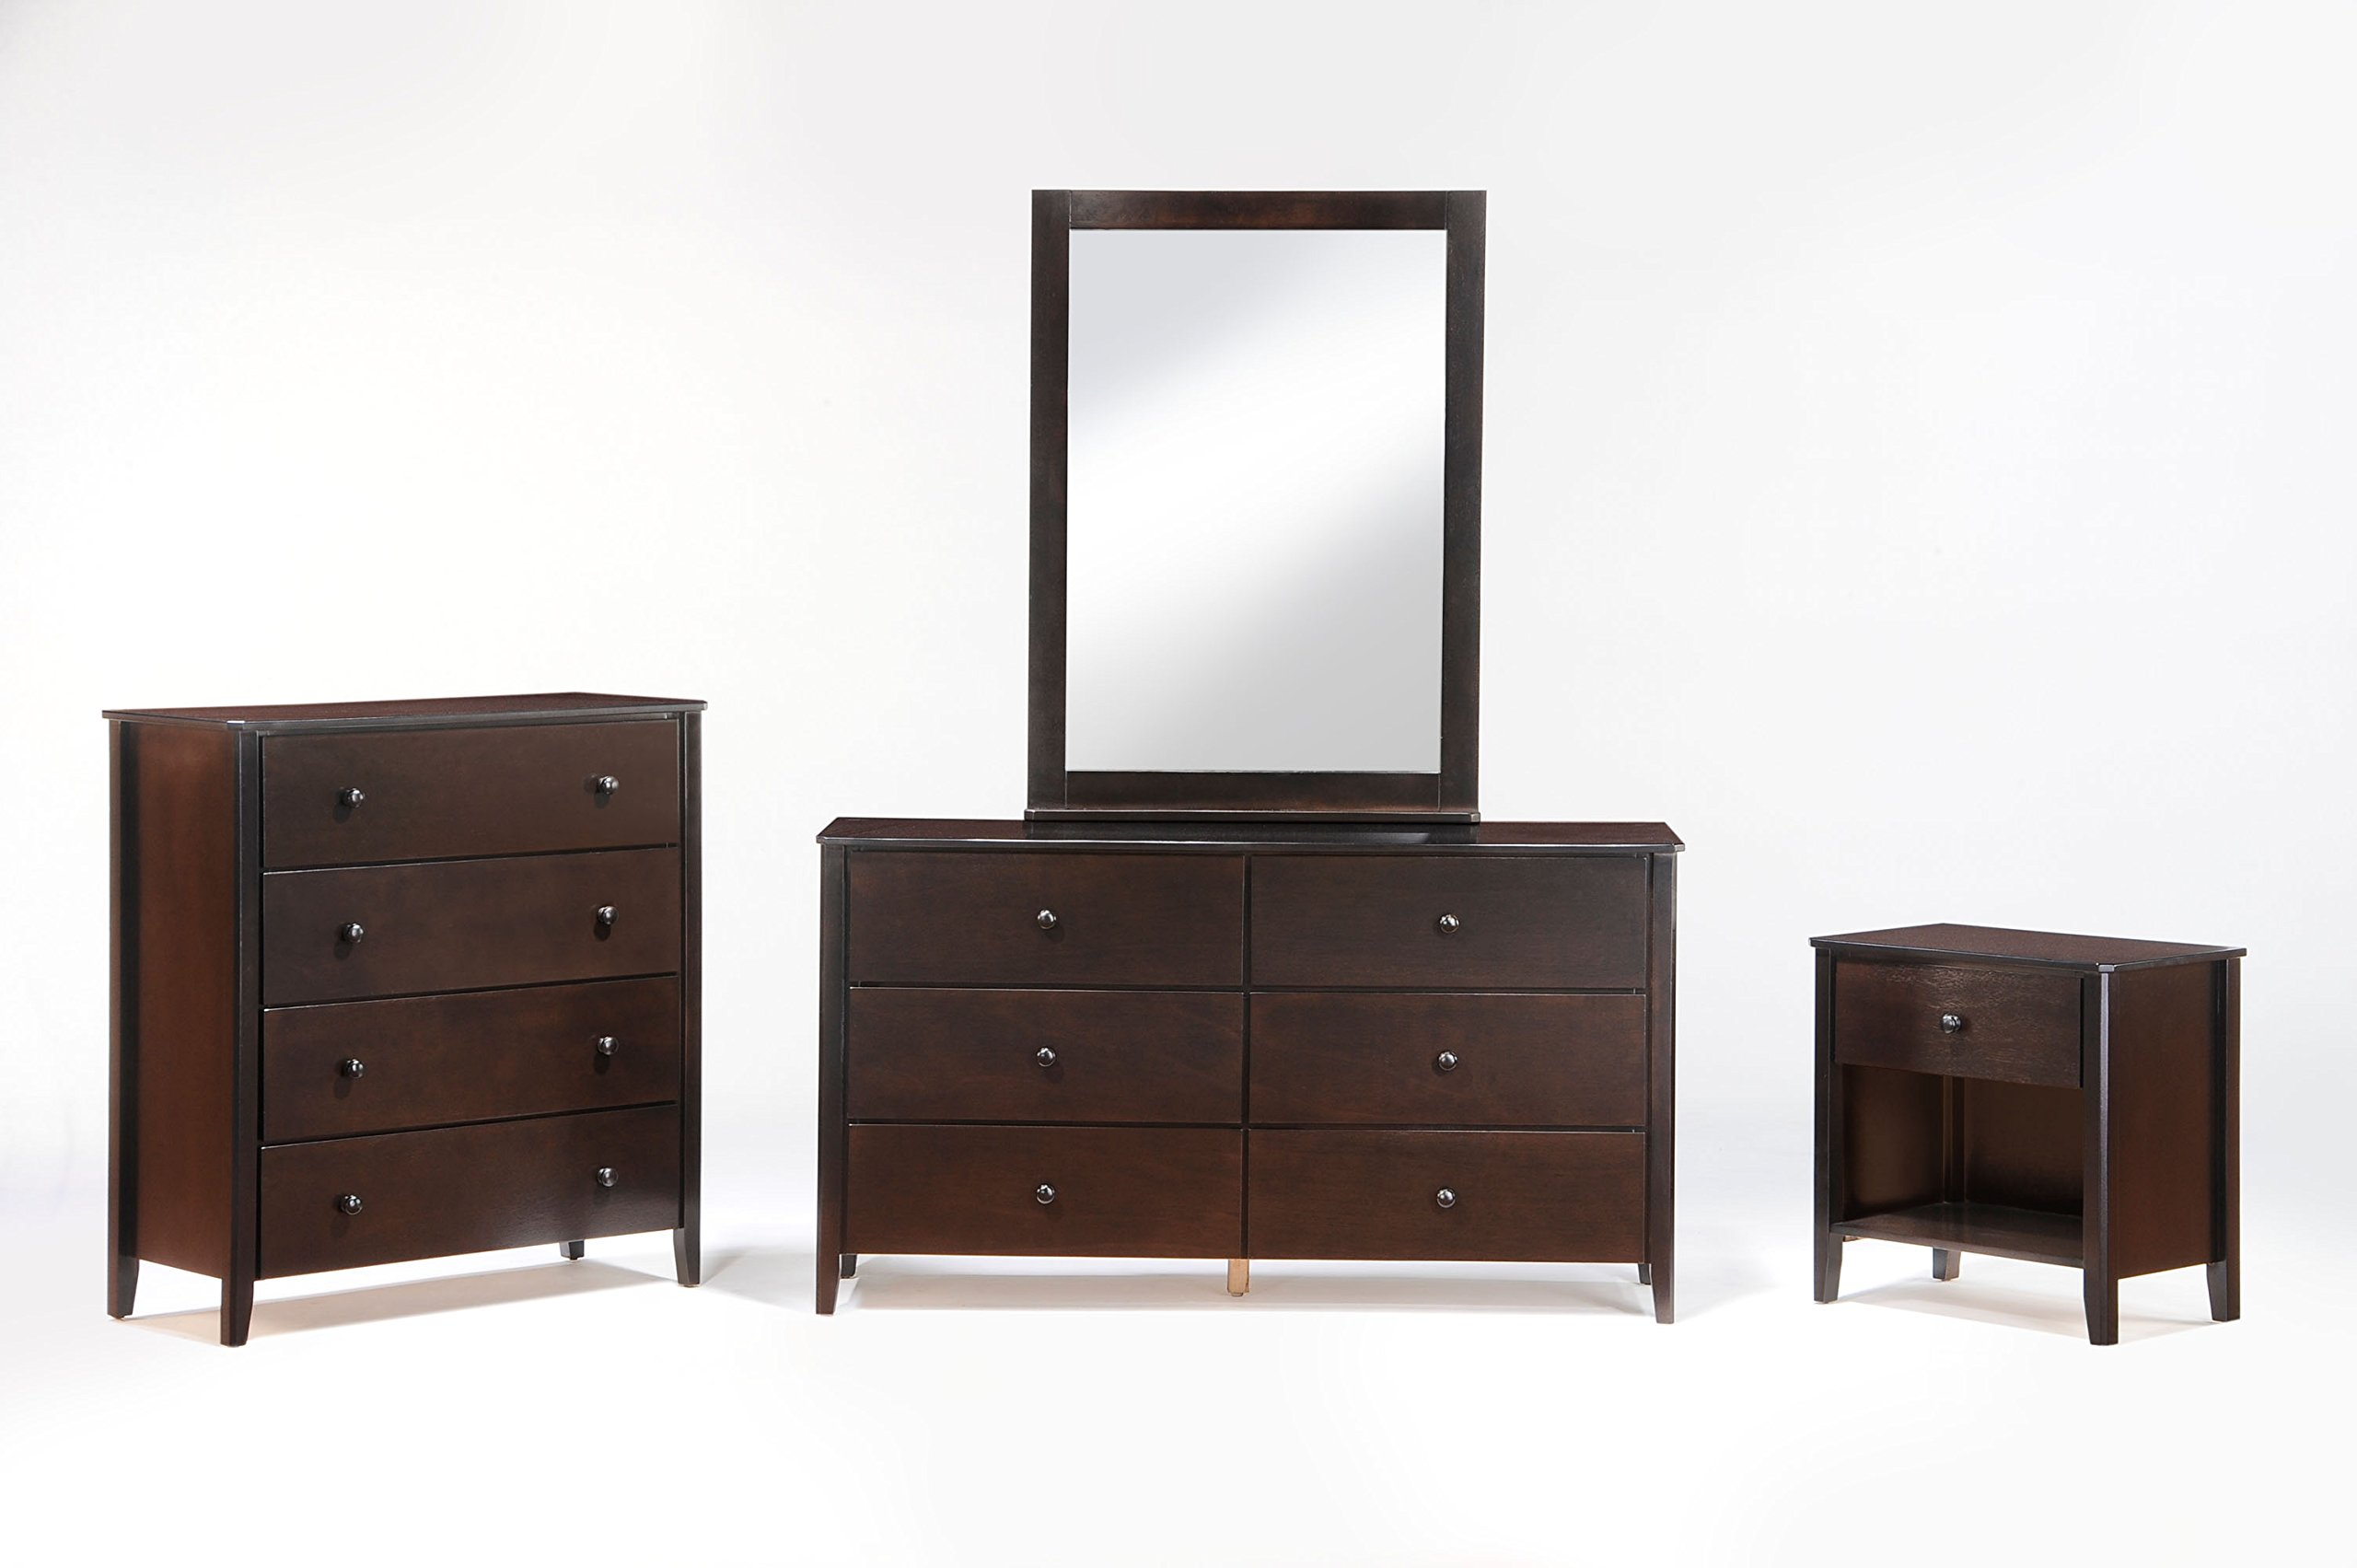 Night & Day Furniture Zest 4 Drawer Chest in Chocolate Finish